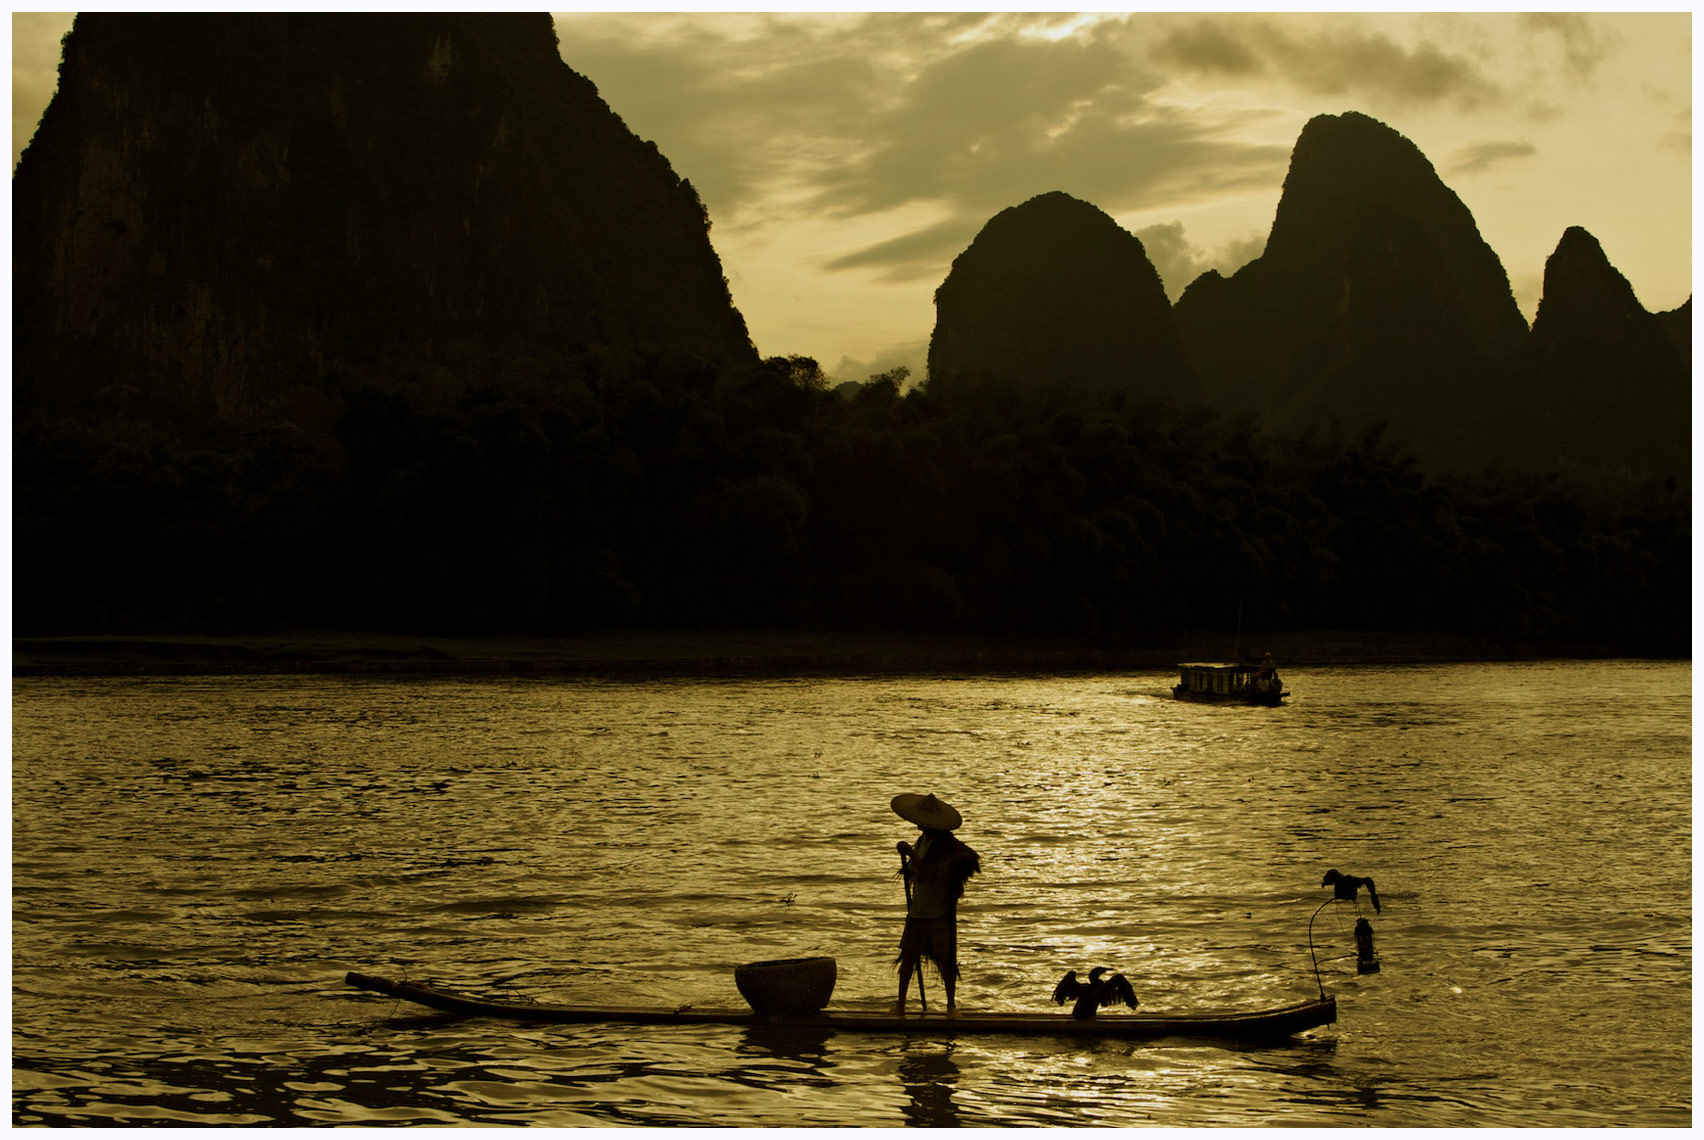 Cormorant Fisherman on the Li River near Yangshuo, China